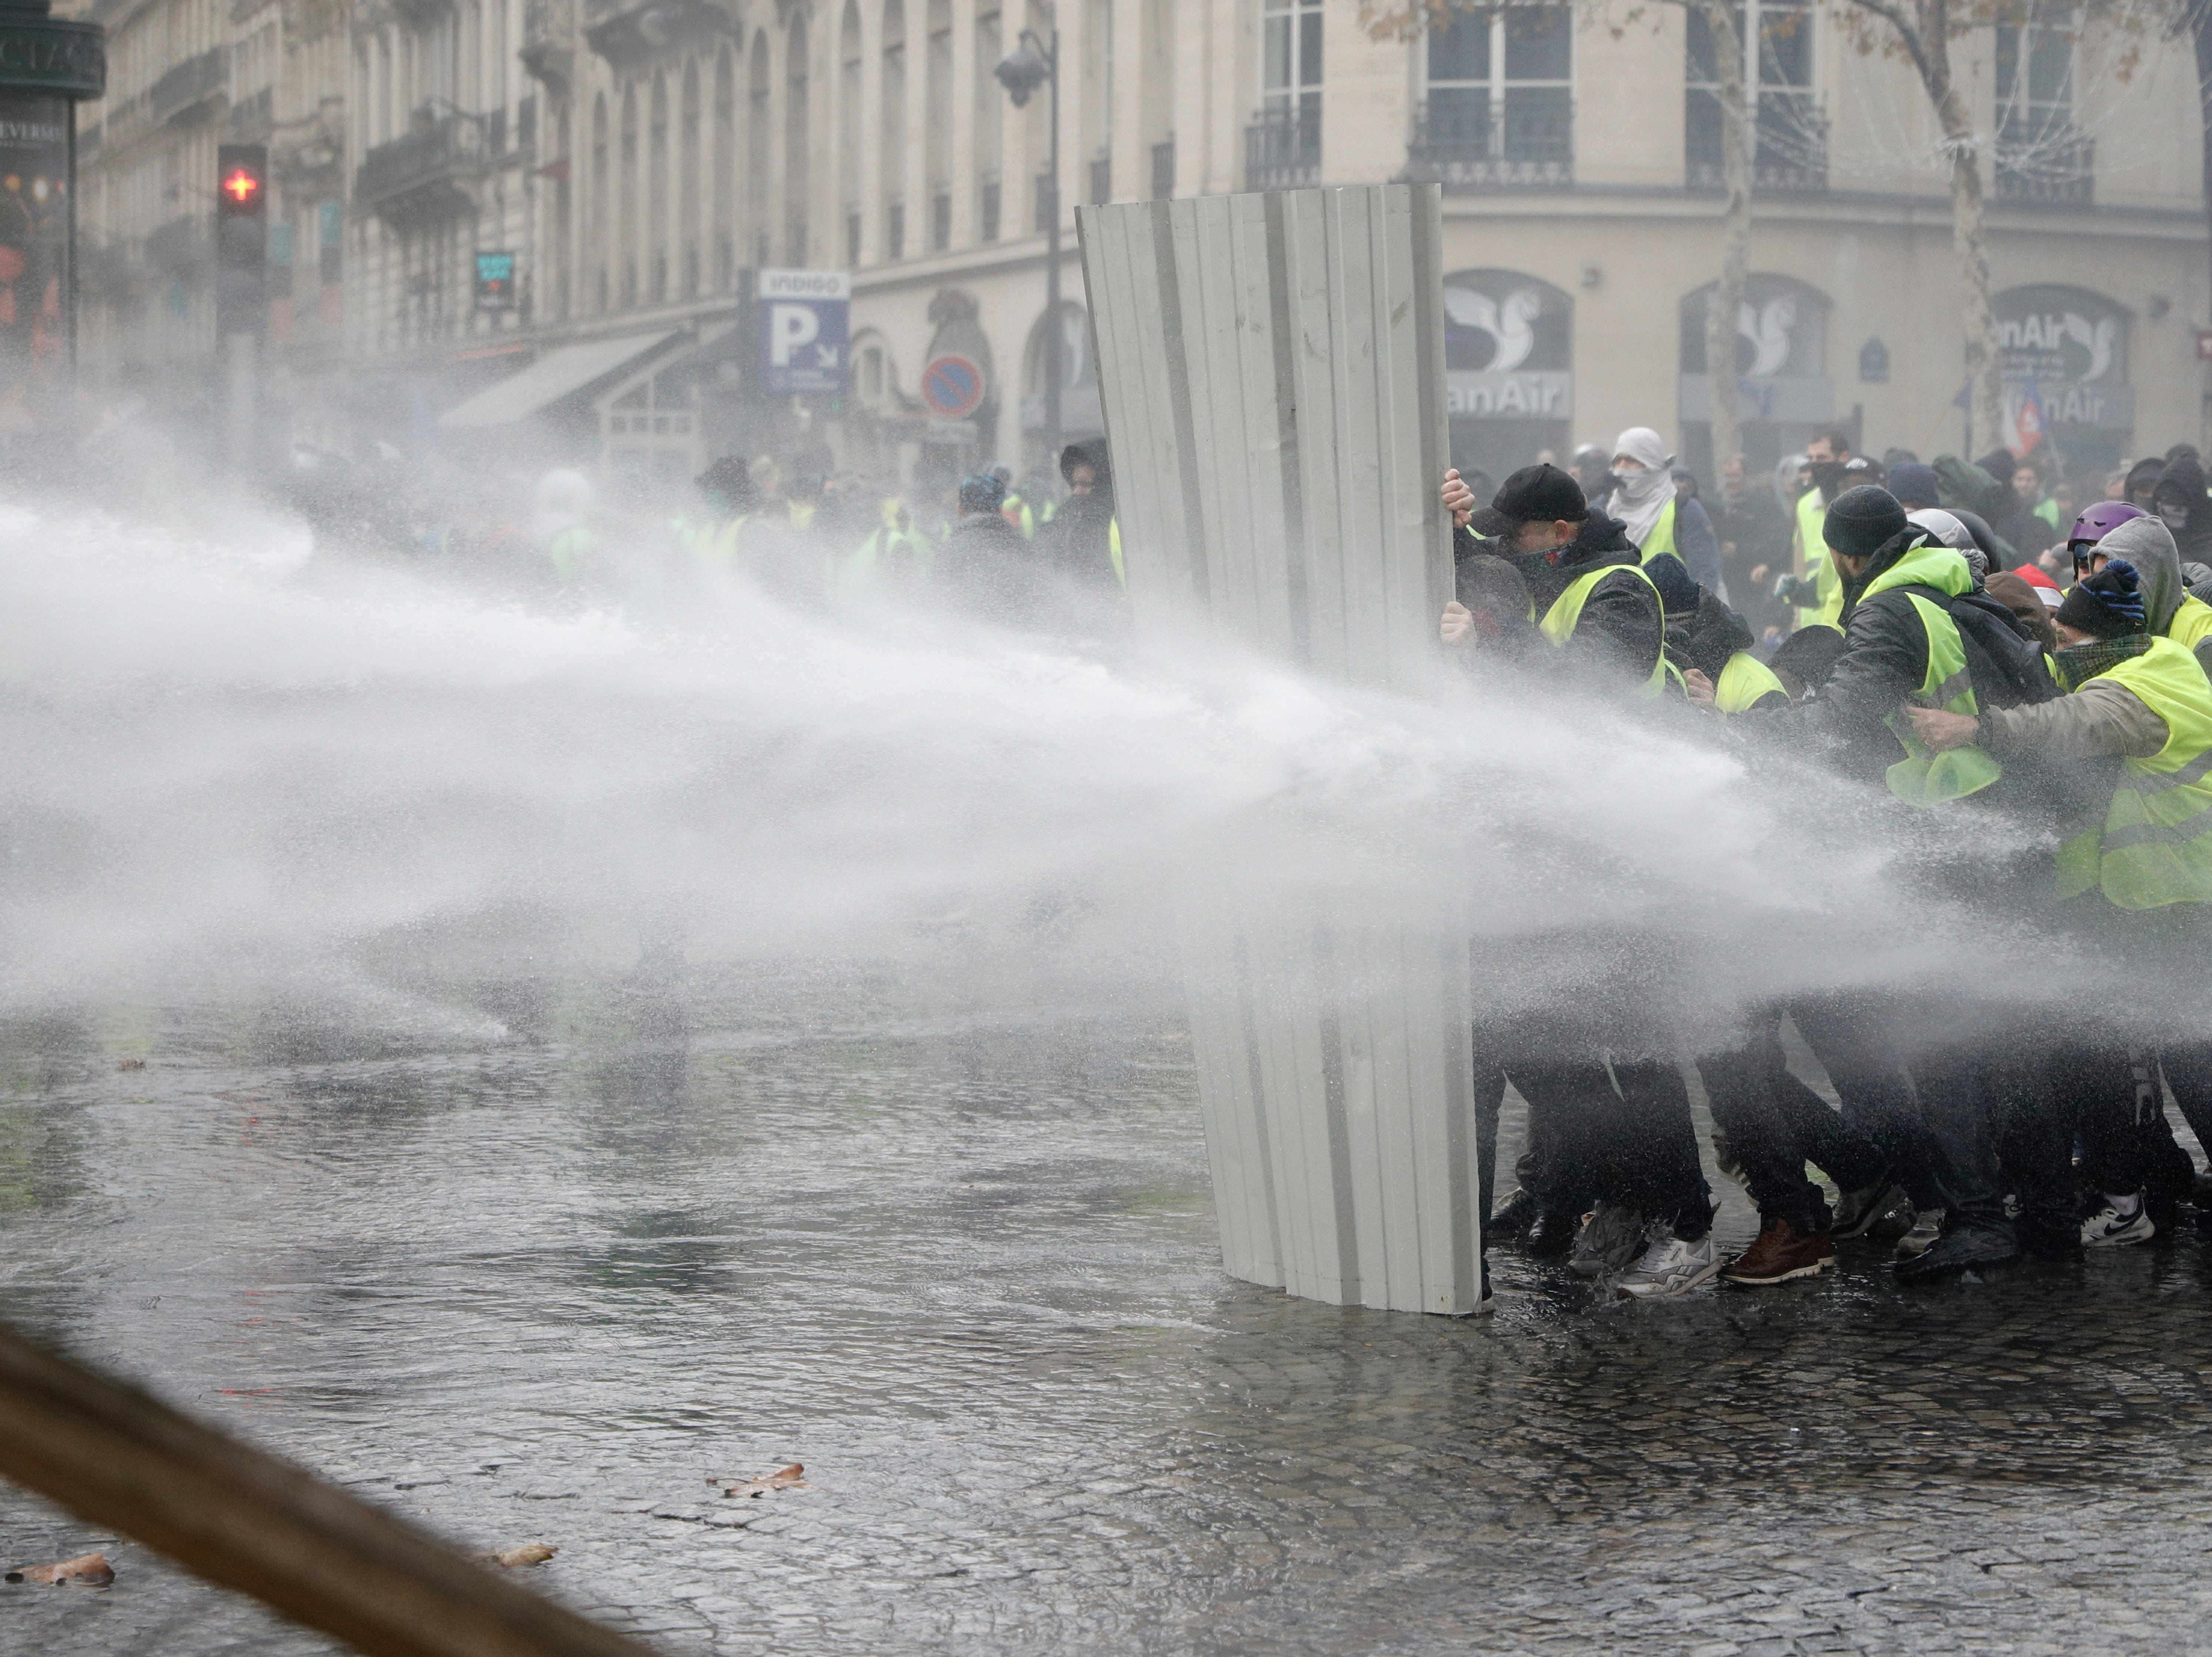 Demonstrators, called the yellow jackets, use a construction barrier to repel a police water canon, during clashes on the famed Champs-Elysees avenue in Paris, France, as they protest against the rising of the fuel taxes, Saturday, Nov. 24, 2018.